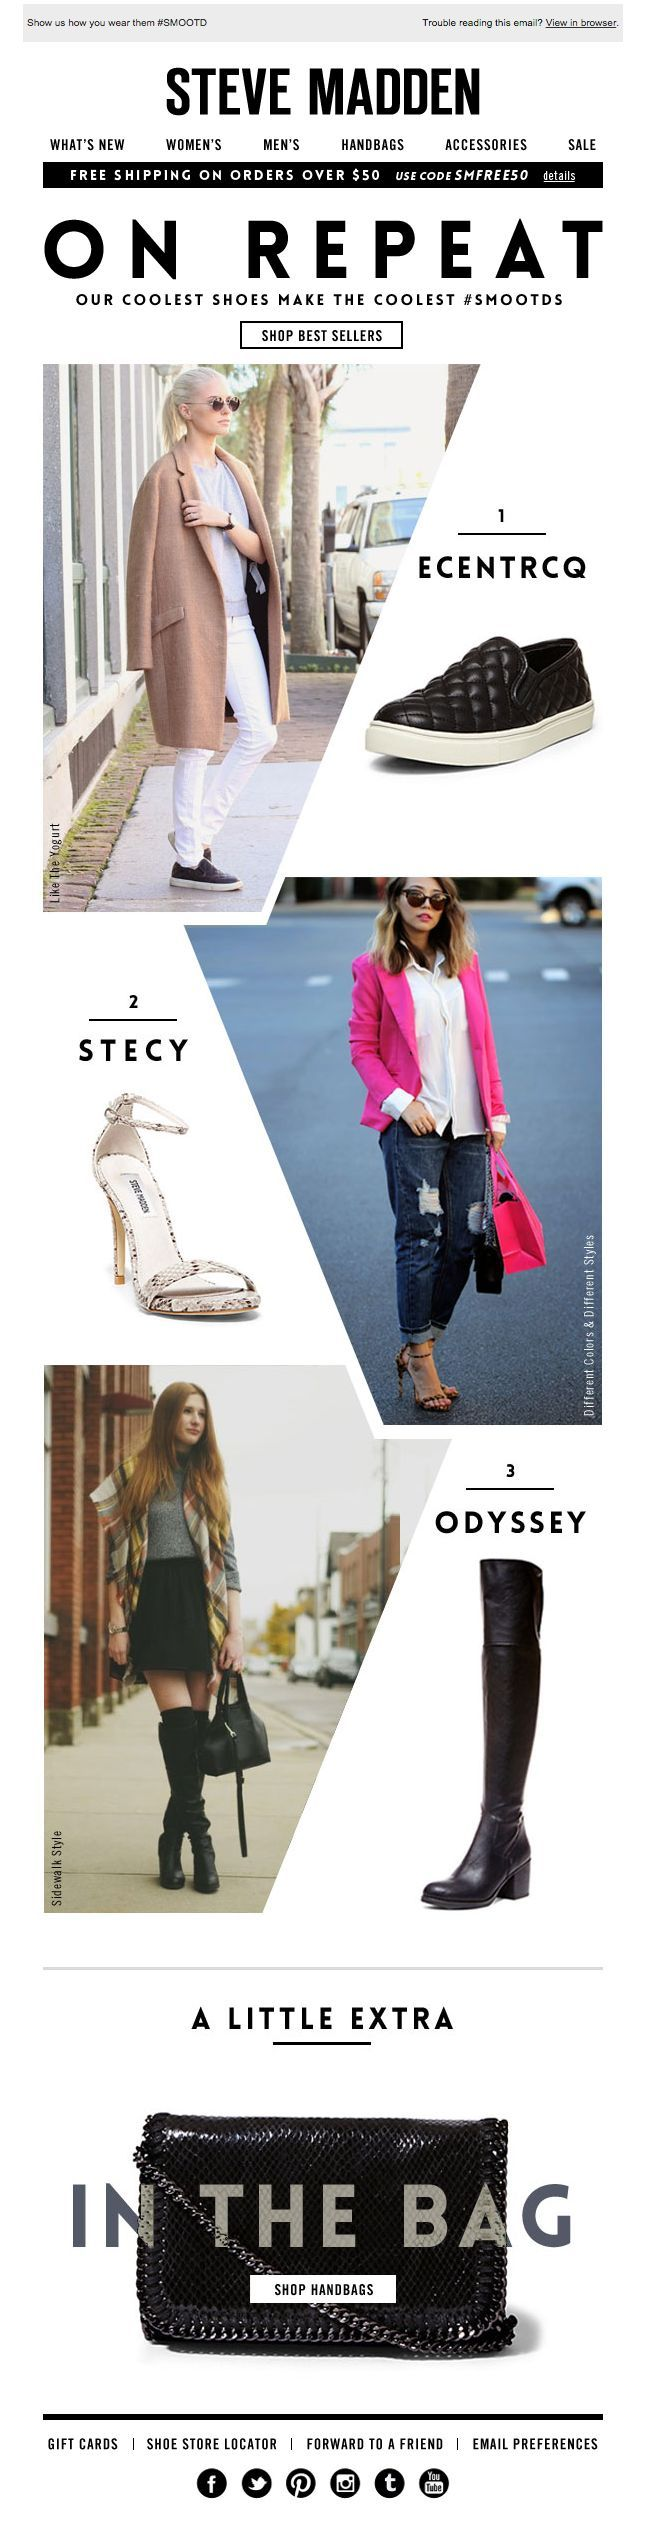 Steve Madden   newsletter   fashion email   fashion design   email   email marketing   email inspiration   e-mail